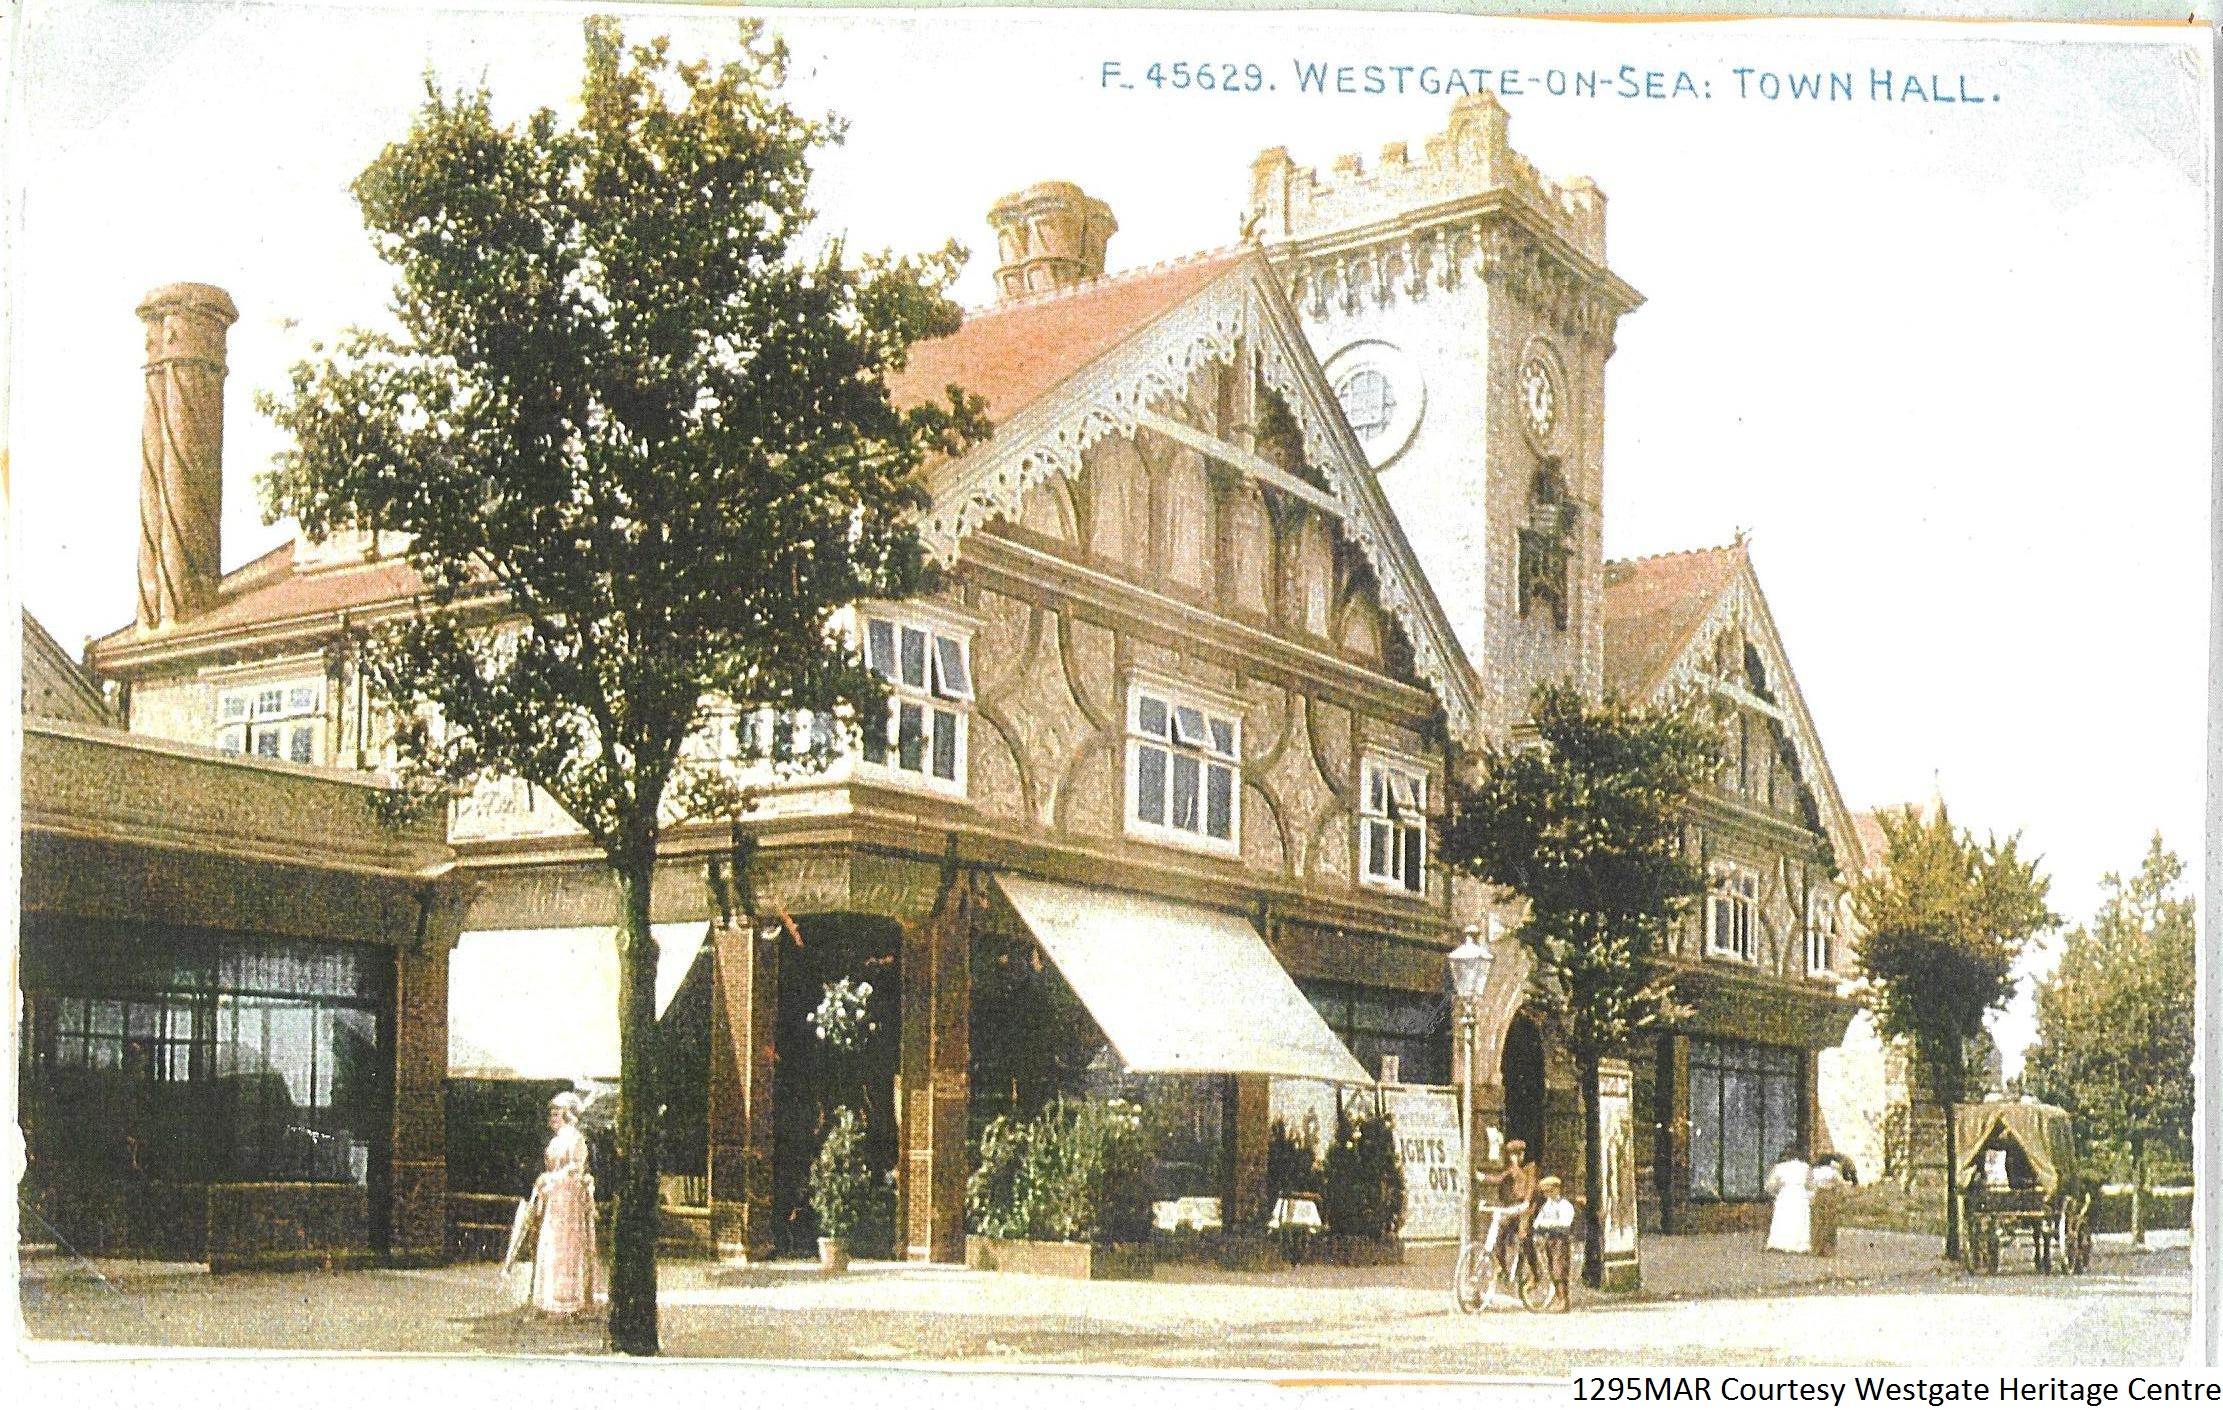 Westgate Town Hall